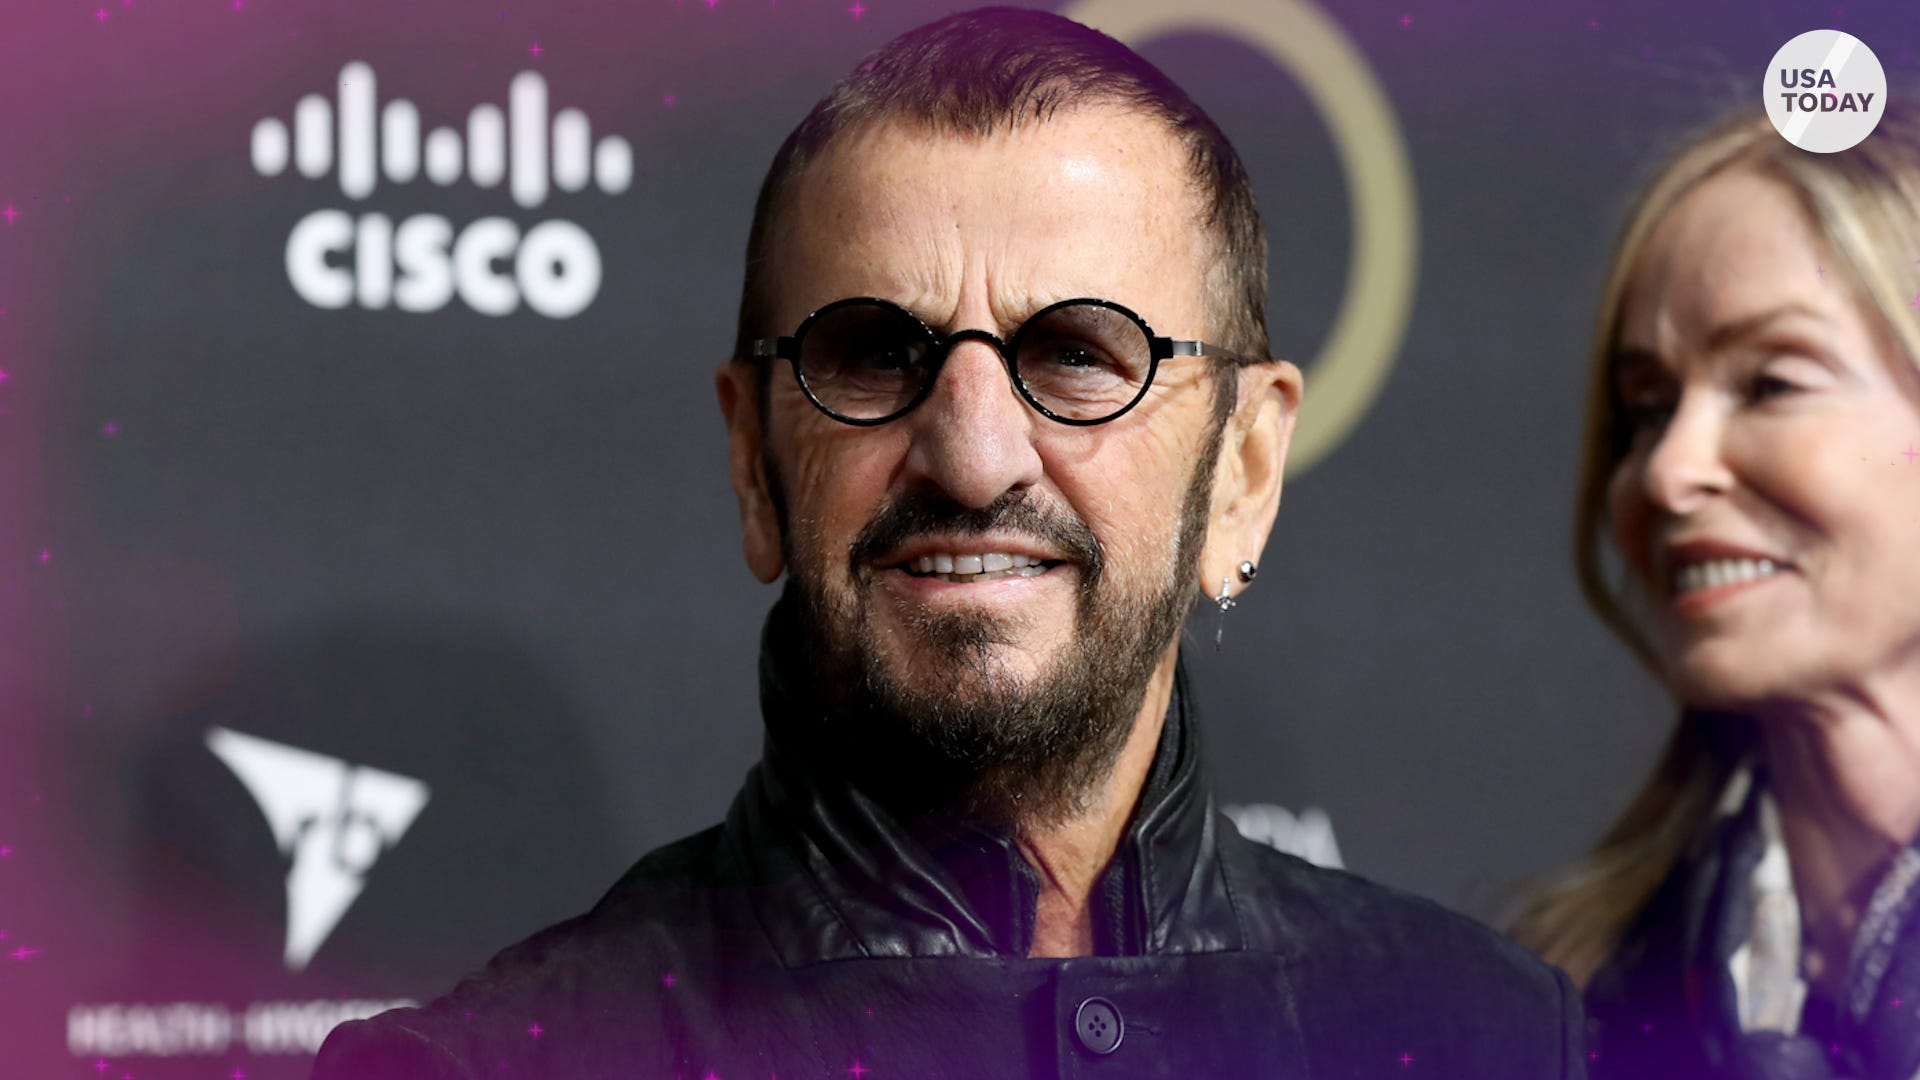 Ringo Starr on reuniting with Paul McCartney for new EP and getting the COVID vaccine